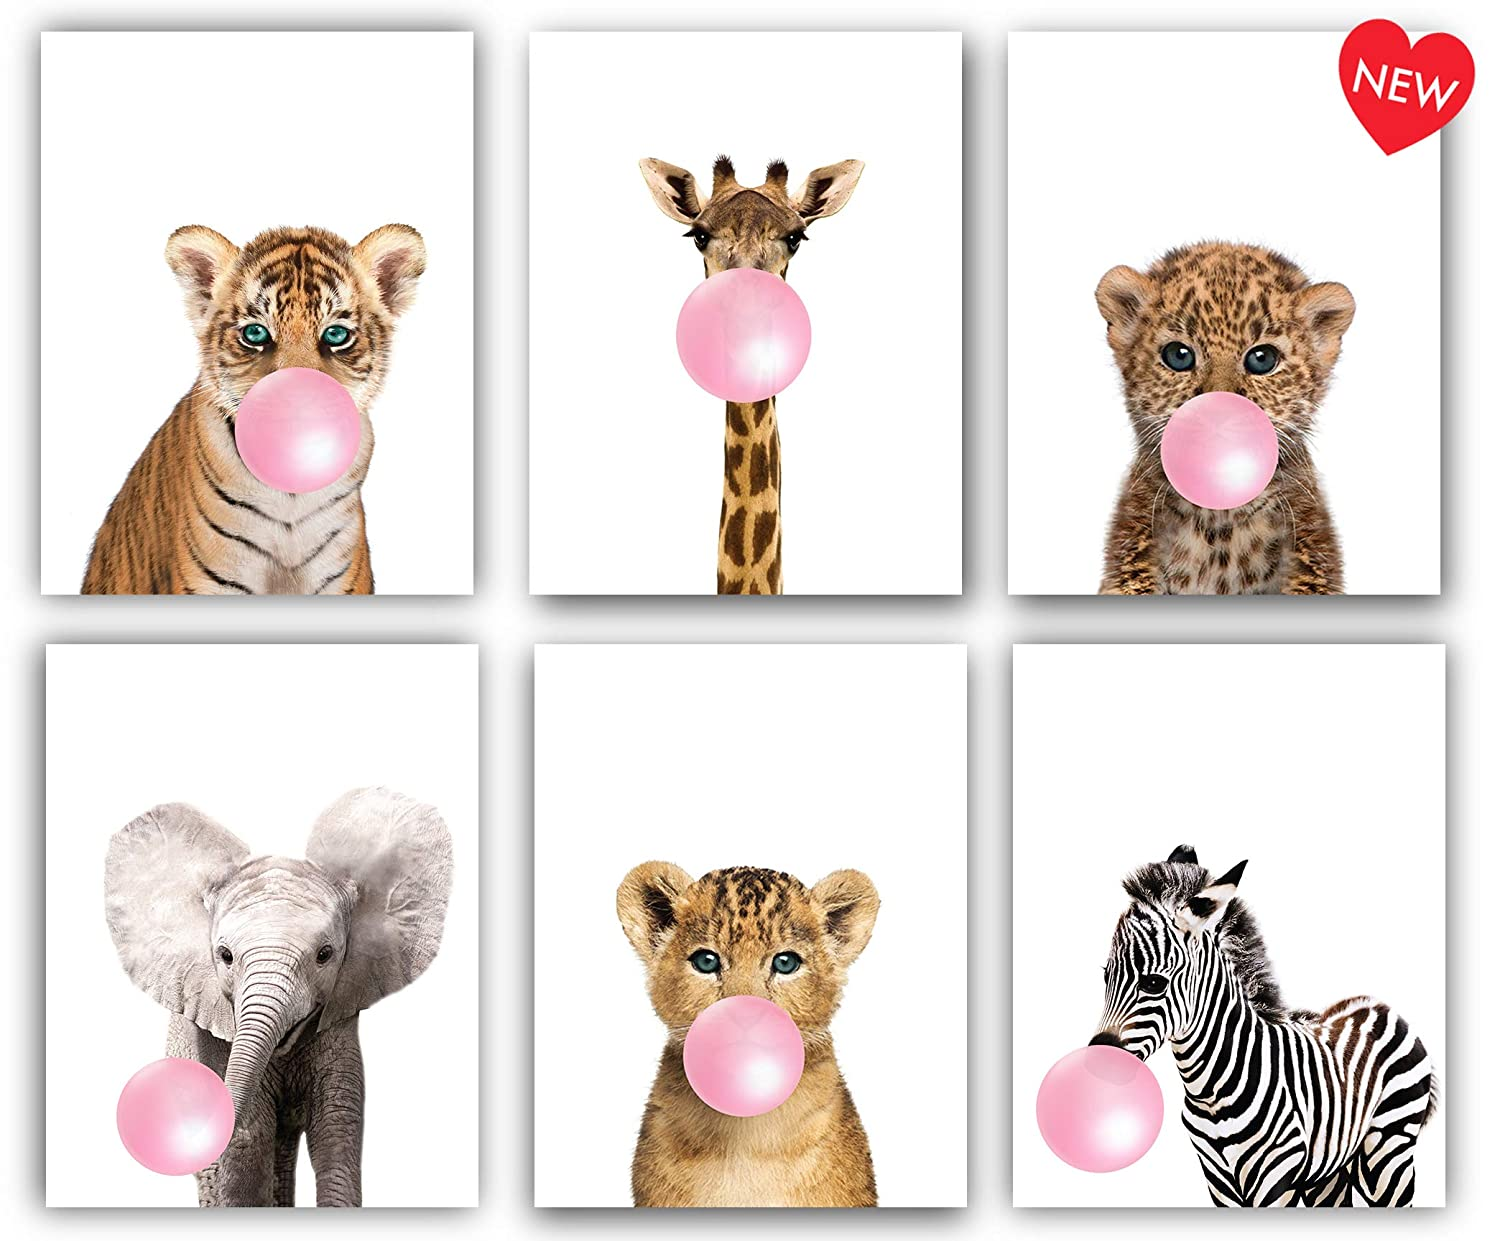 Safari Pink Bubblegum Baby Animals Nursery Decor Art - Set of 6 UNFRAMED Wall Prints 8x10 (Pink)